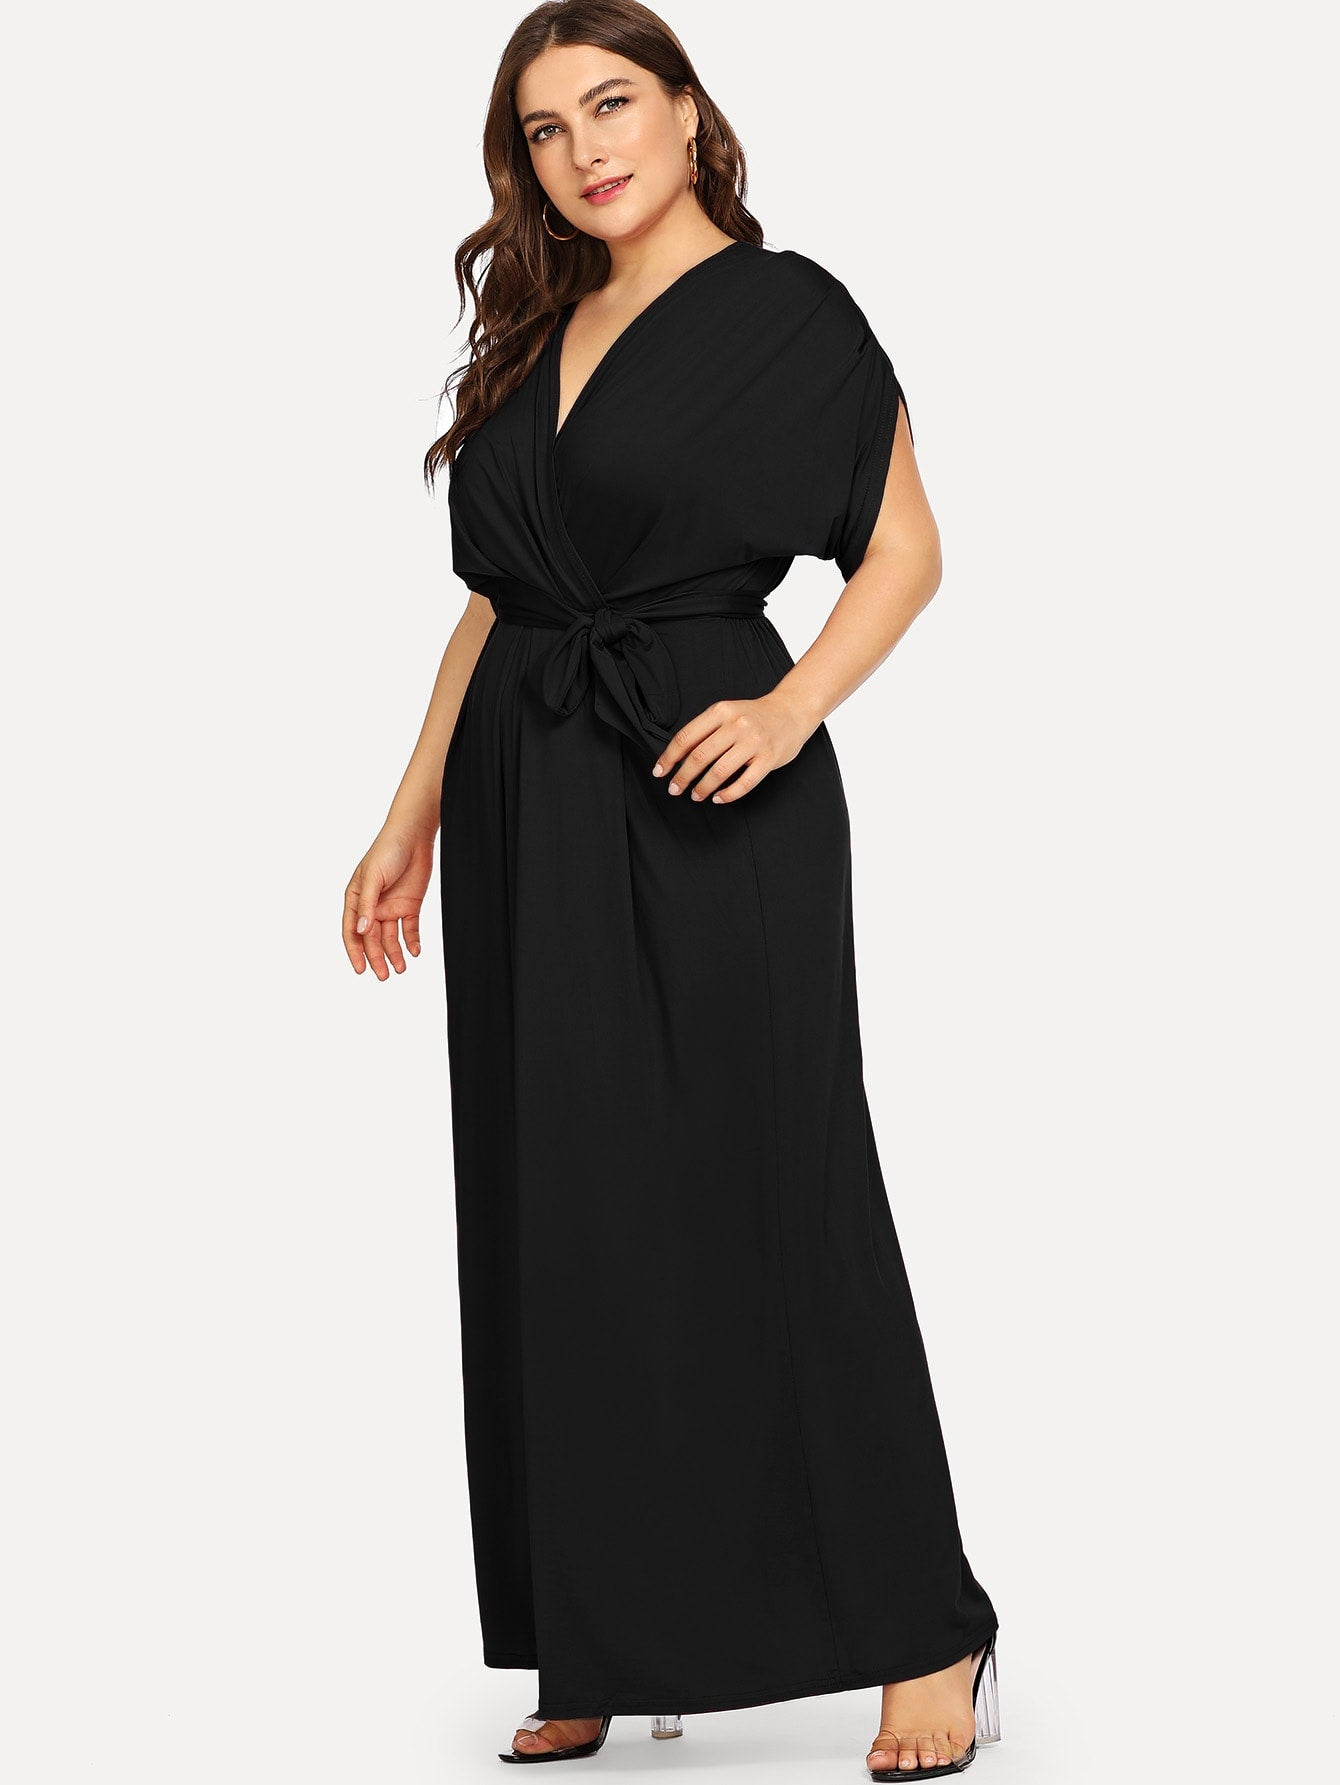 Plus Size Black Self Tie Maxi Dress | Plus Size Dresses | SHEIN | Joan & Vern's Apparel